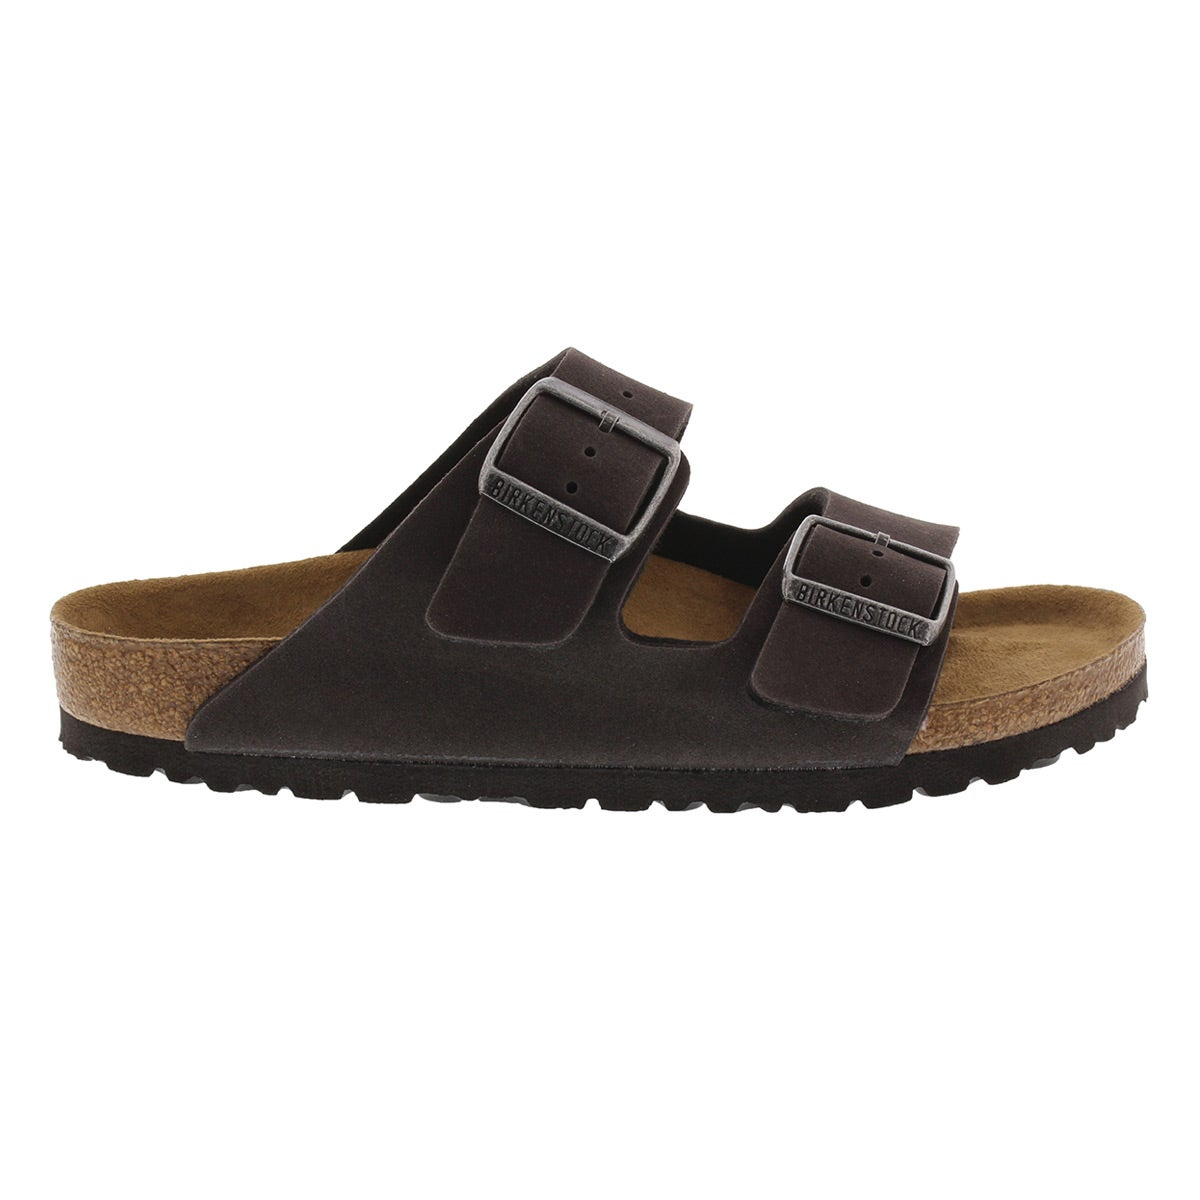 Lds Arizona Vegan anthracite sandal